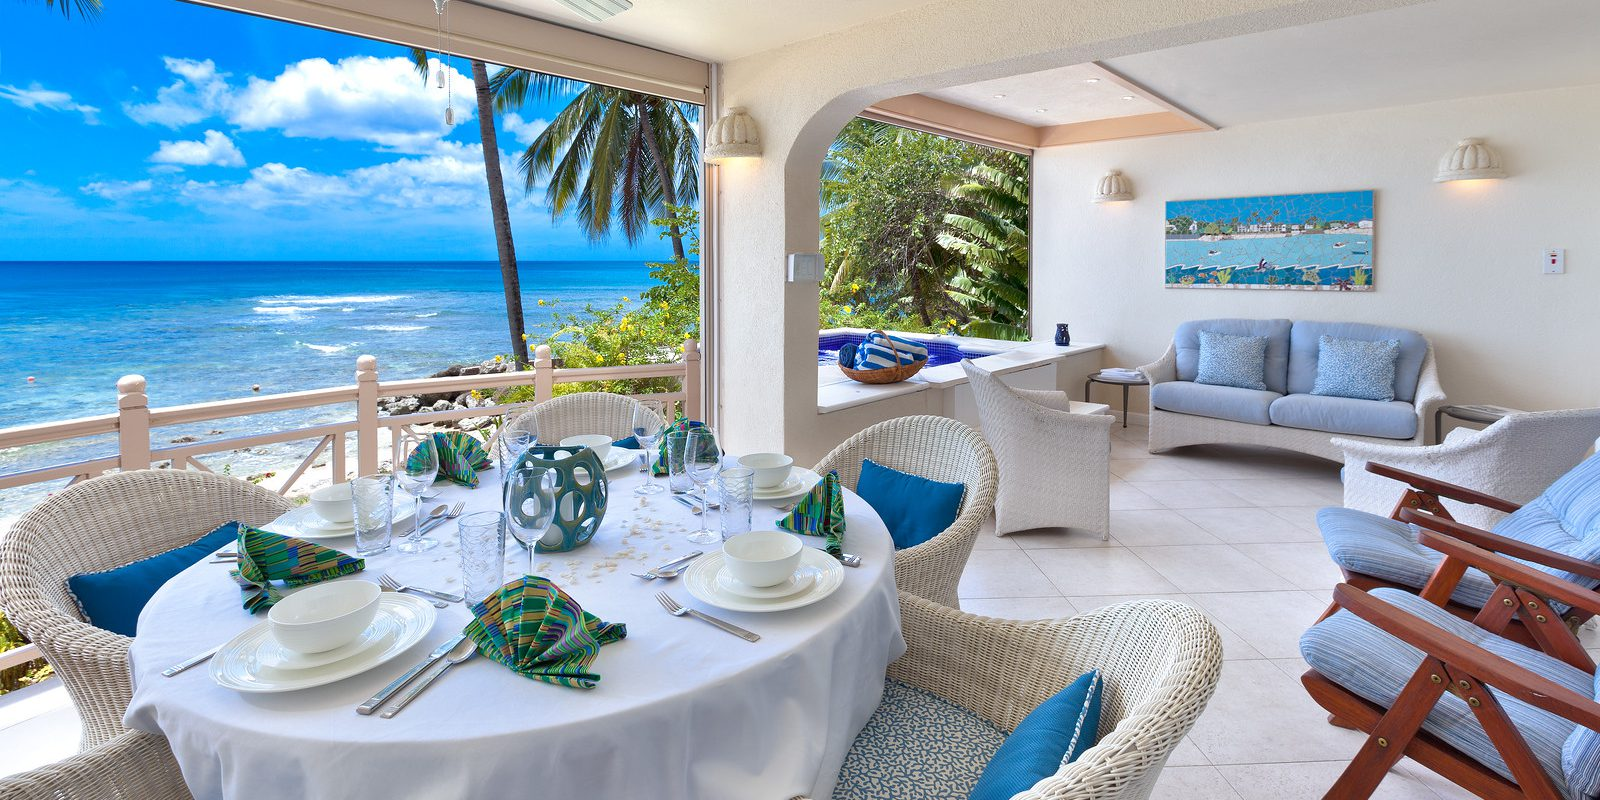 Reeds-House-10-barbados-vacation-rental-2-1600x800